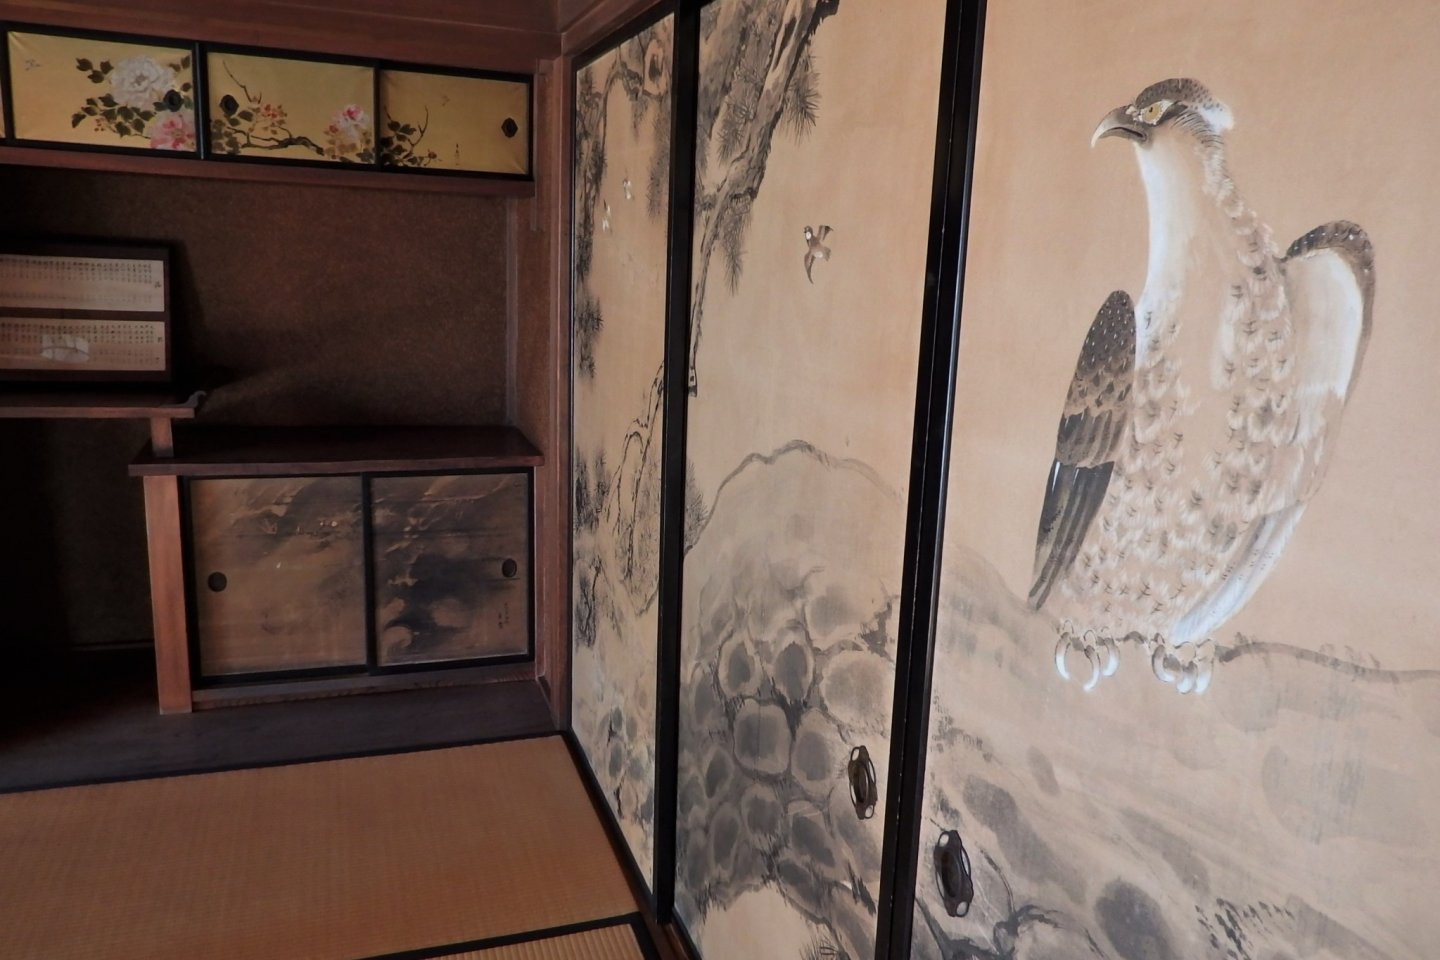 The painted fusuma within the former dental clinic are especially impressive.